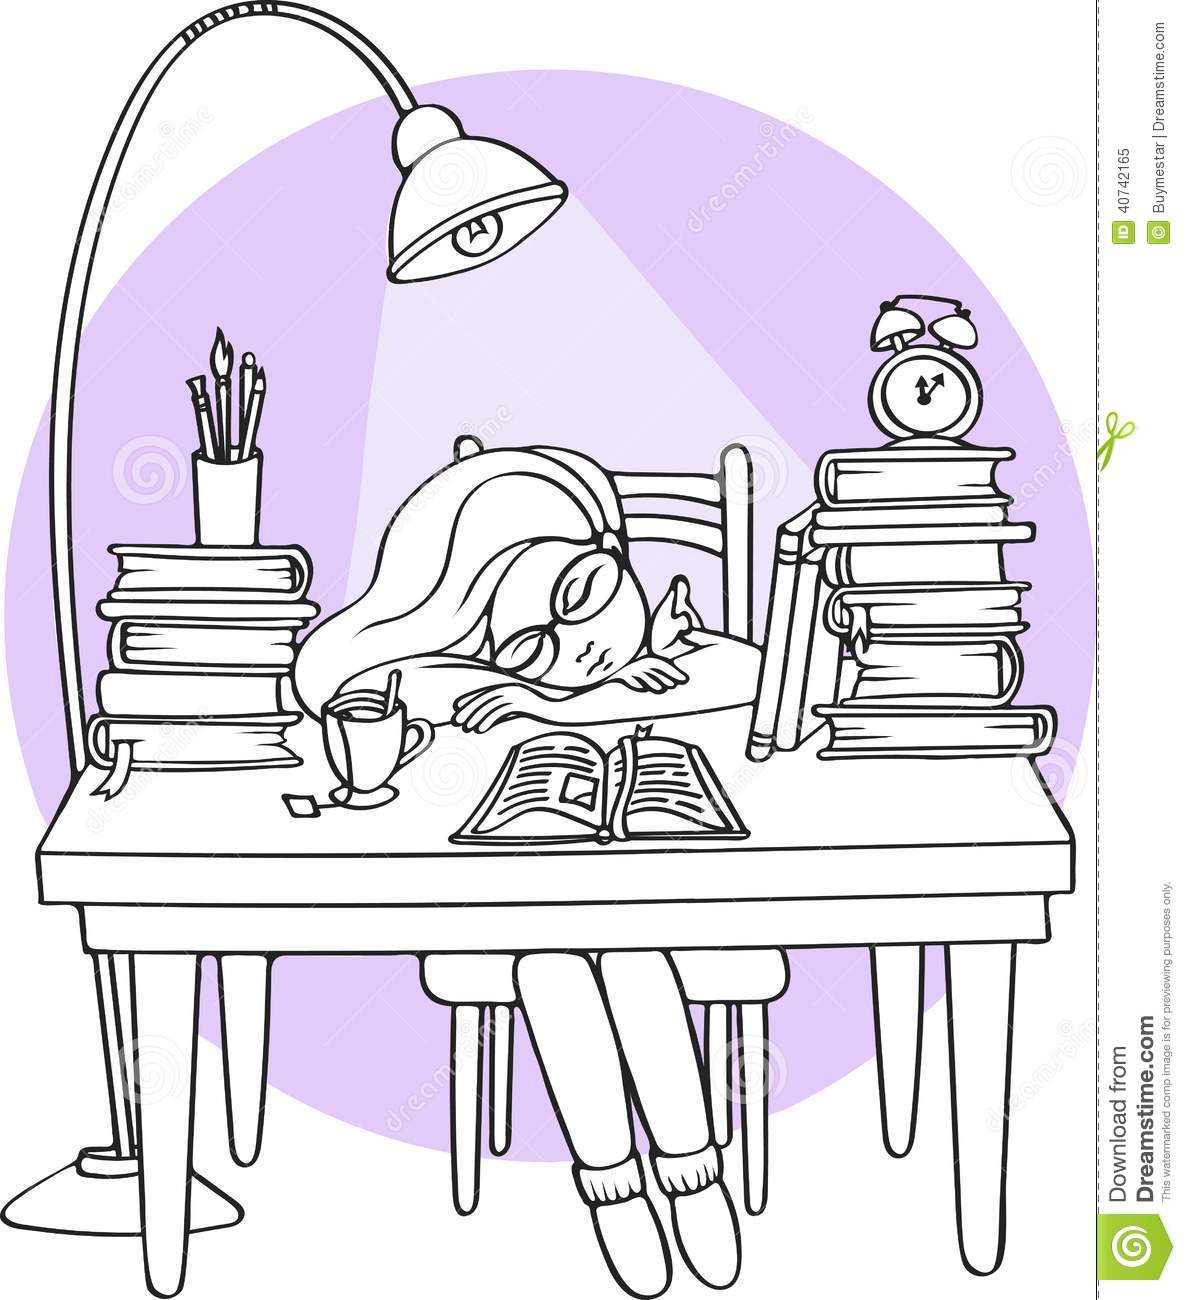 Smart Girl Studying At Night Sleeping On The Desk With Books - Vector Illustration Stock Vector ...